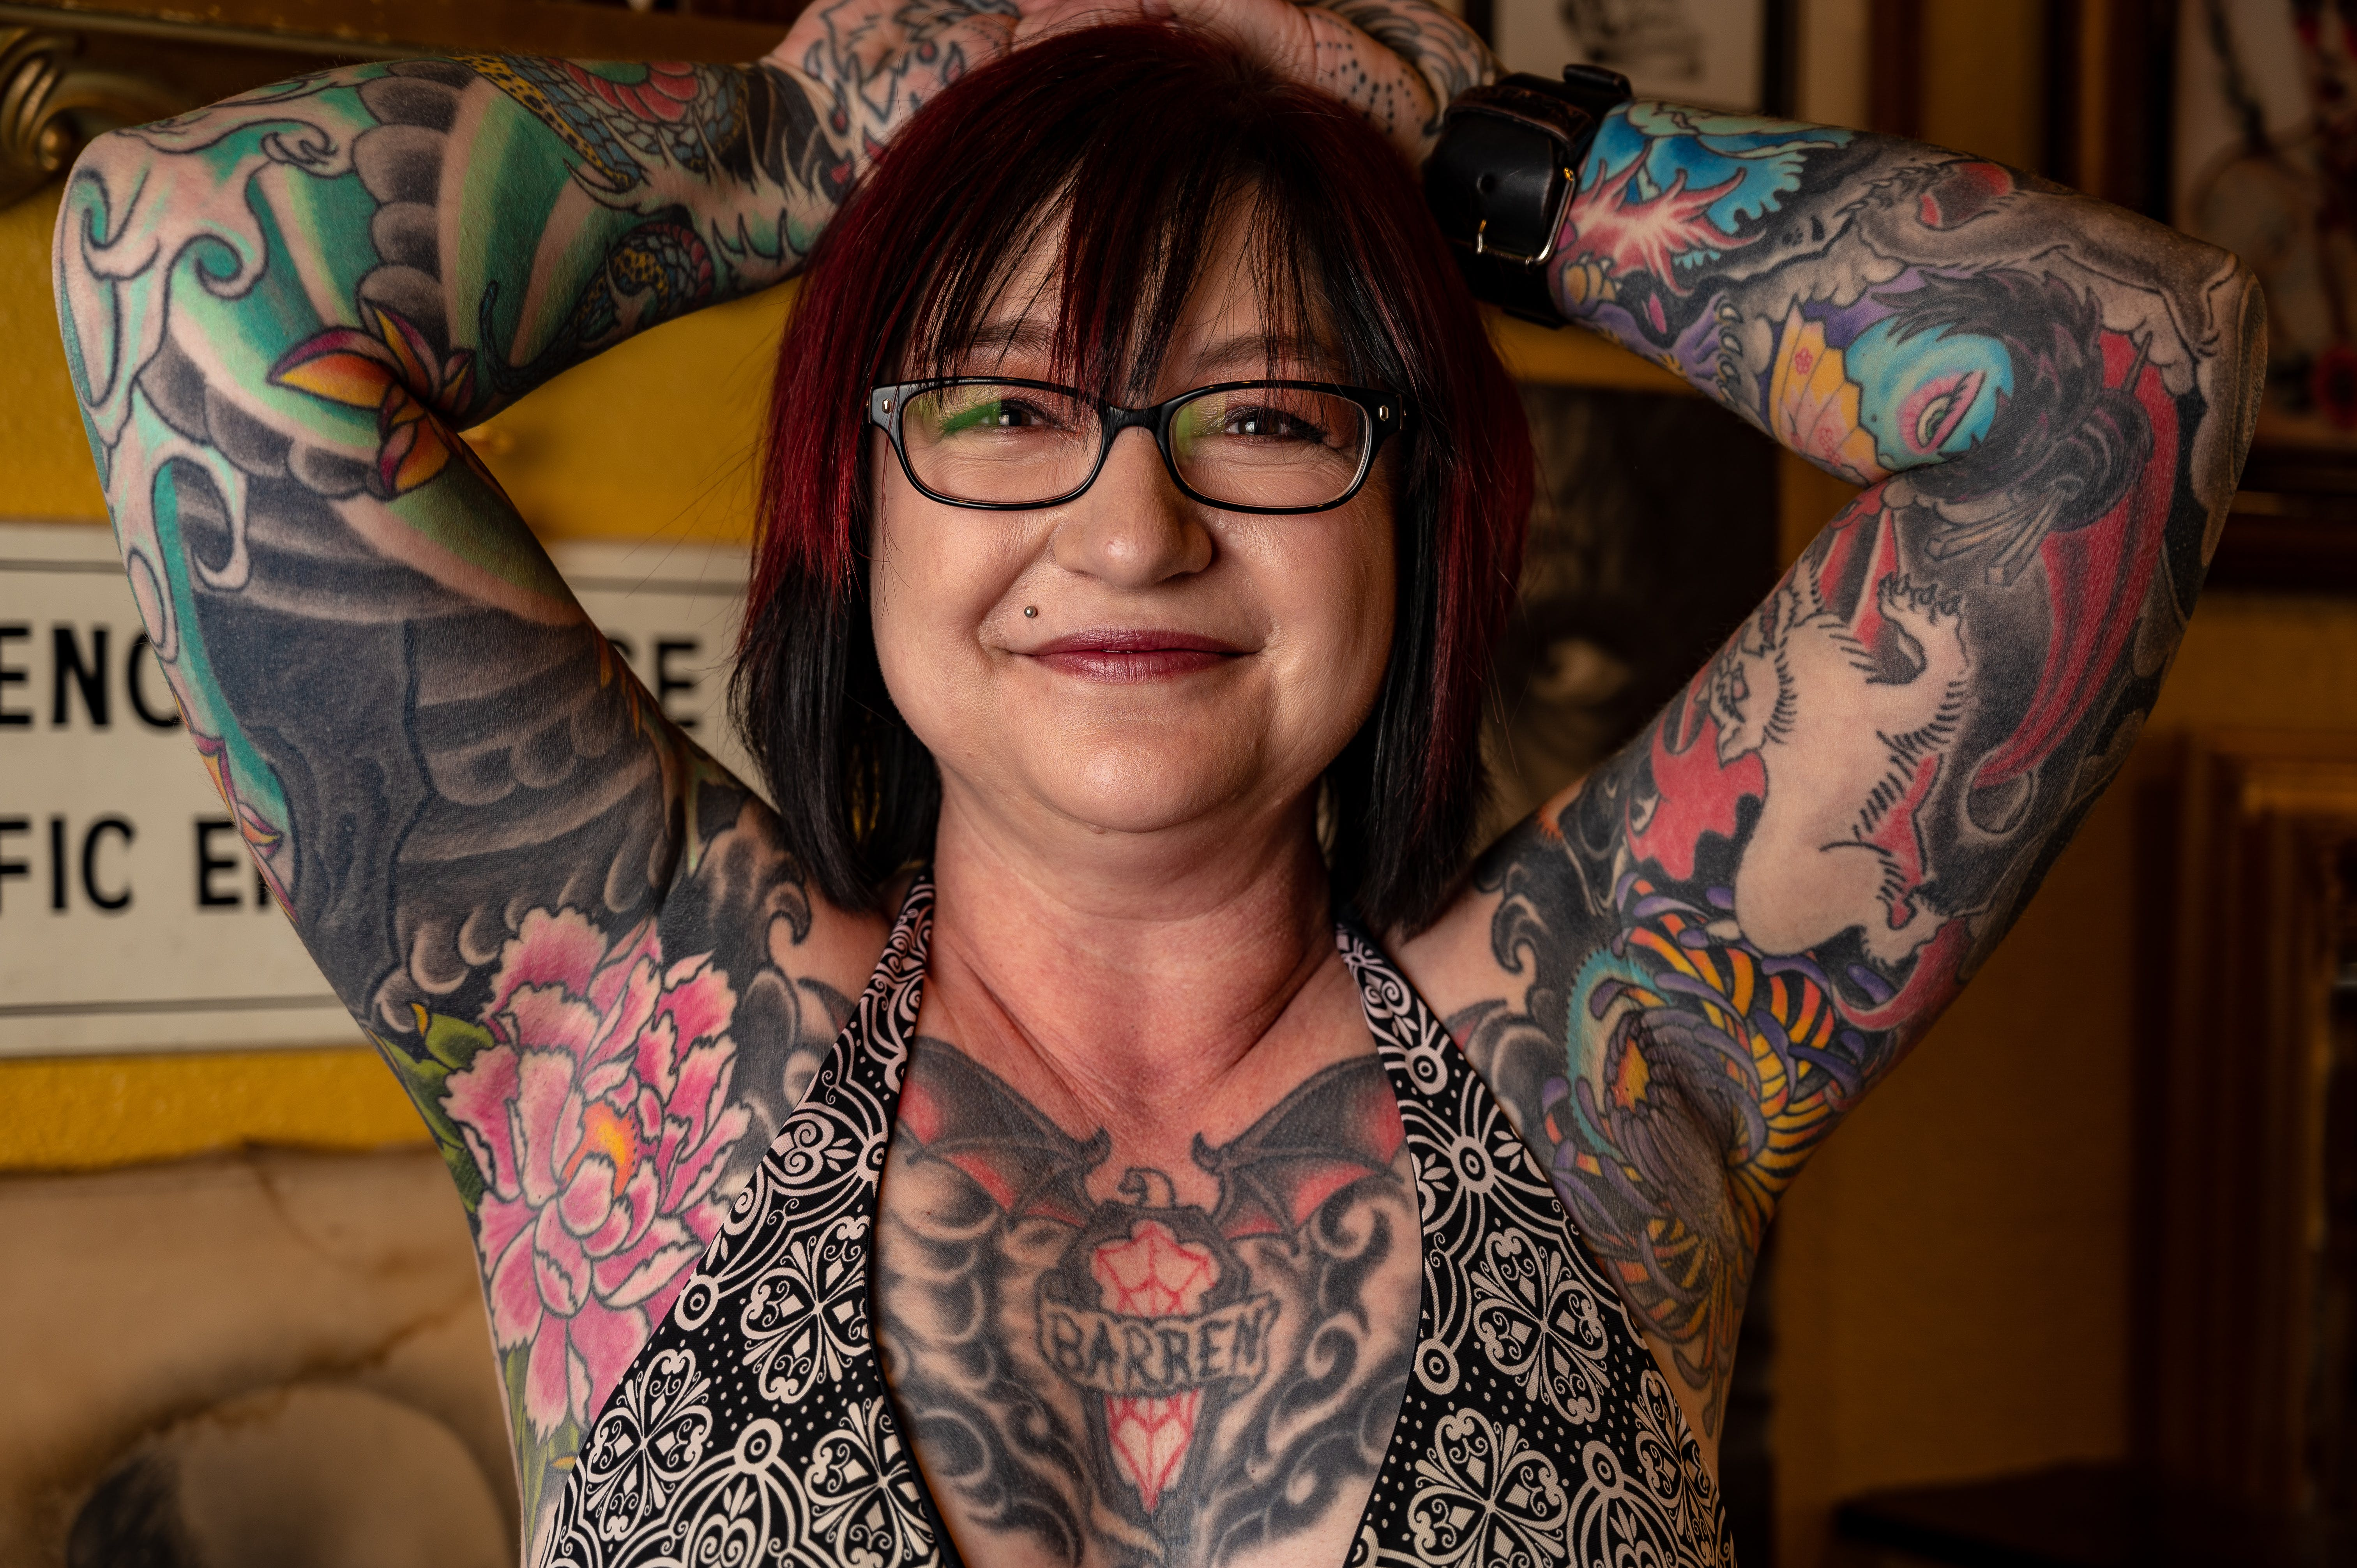 Woman With Tattoo Covered Body Wearing Bra